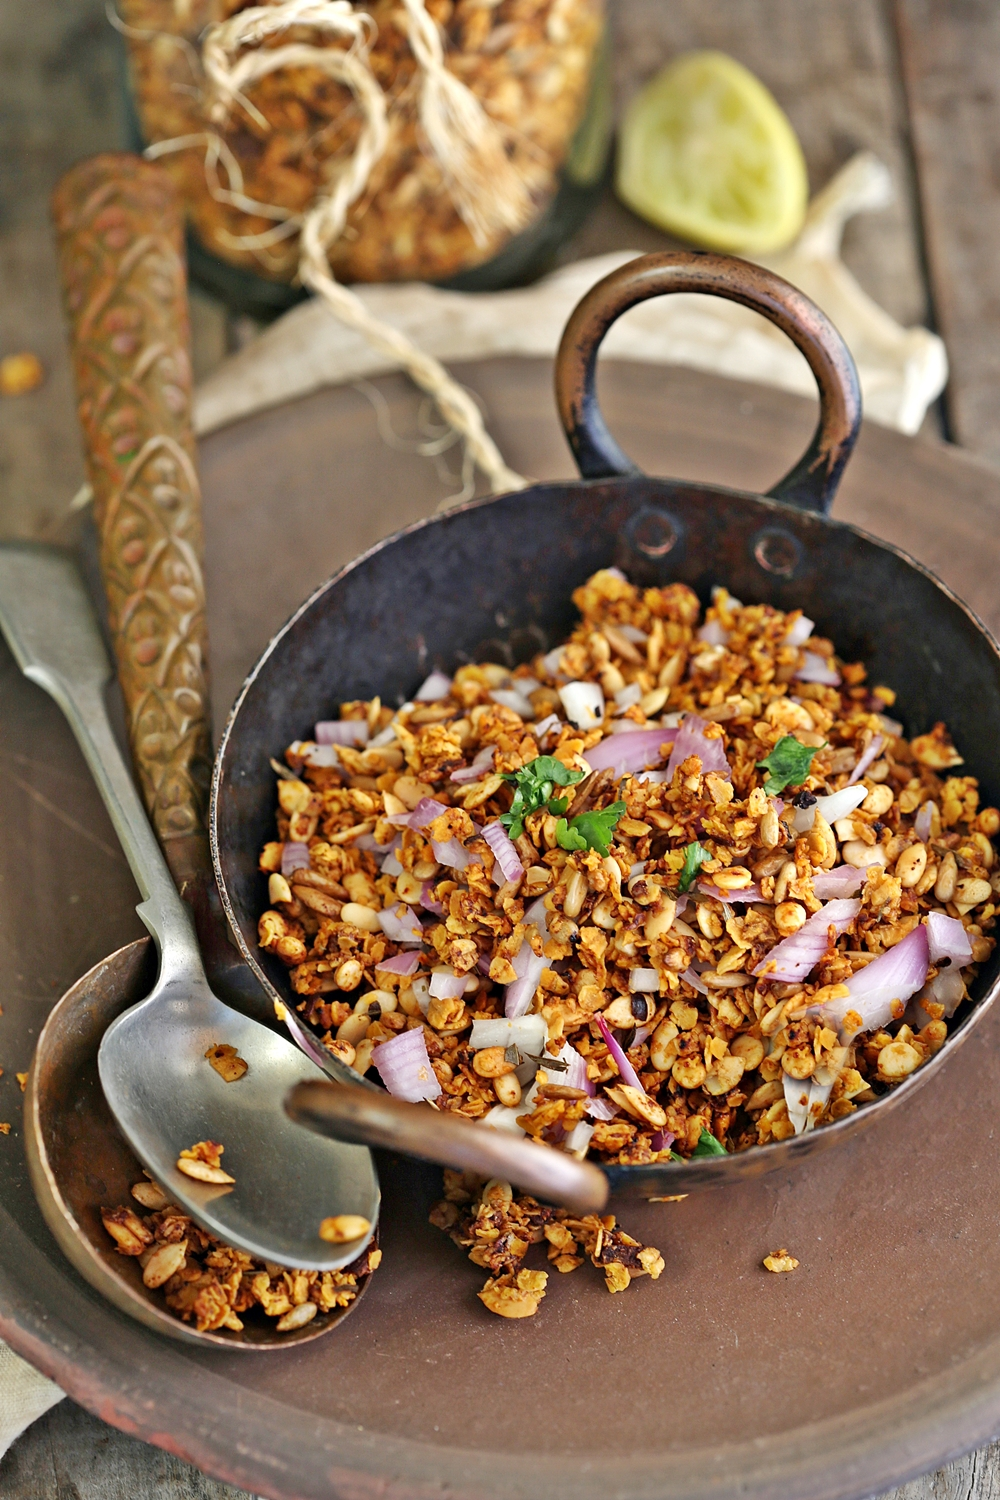 Savoury Granola - delicious,addictive,crisp & crunchy good!